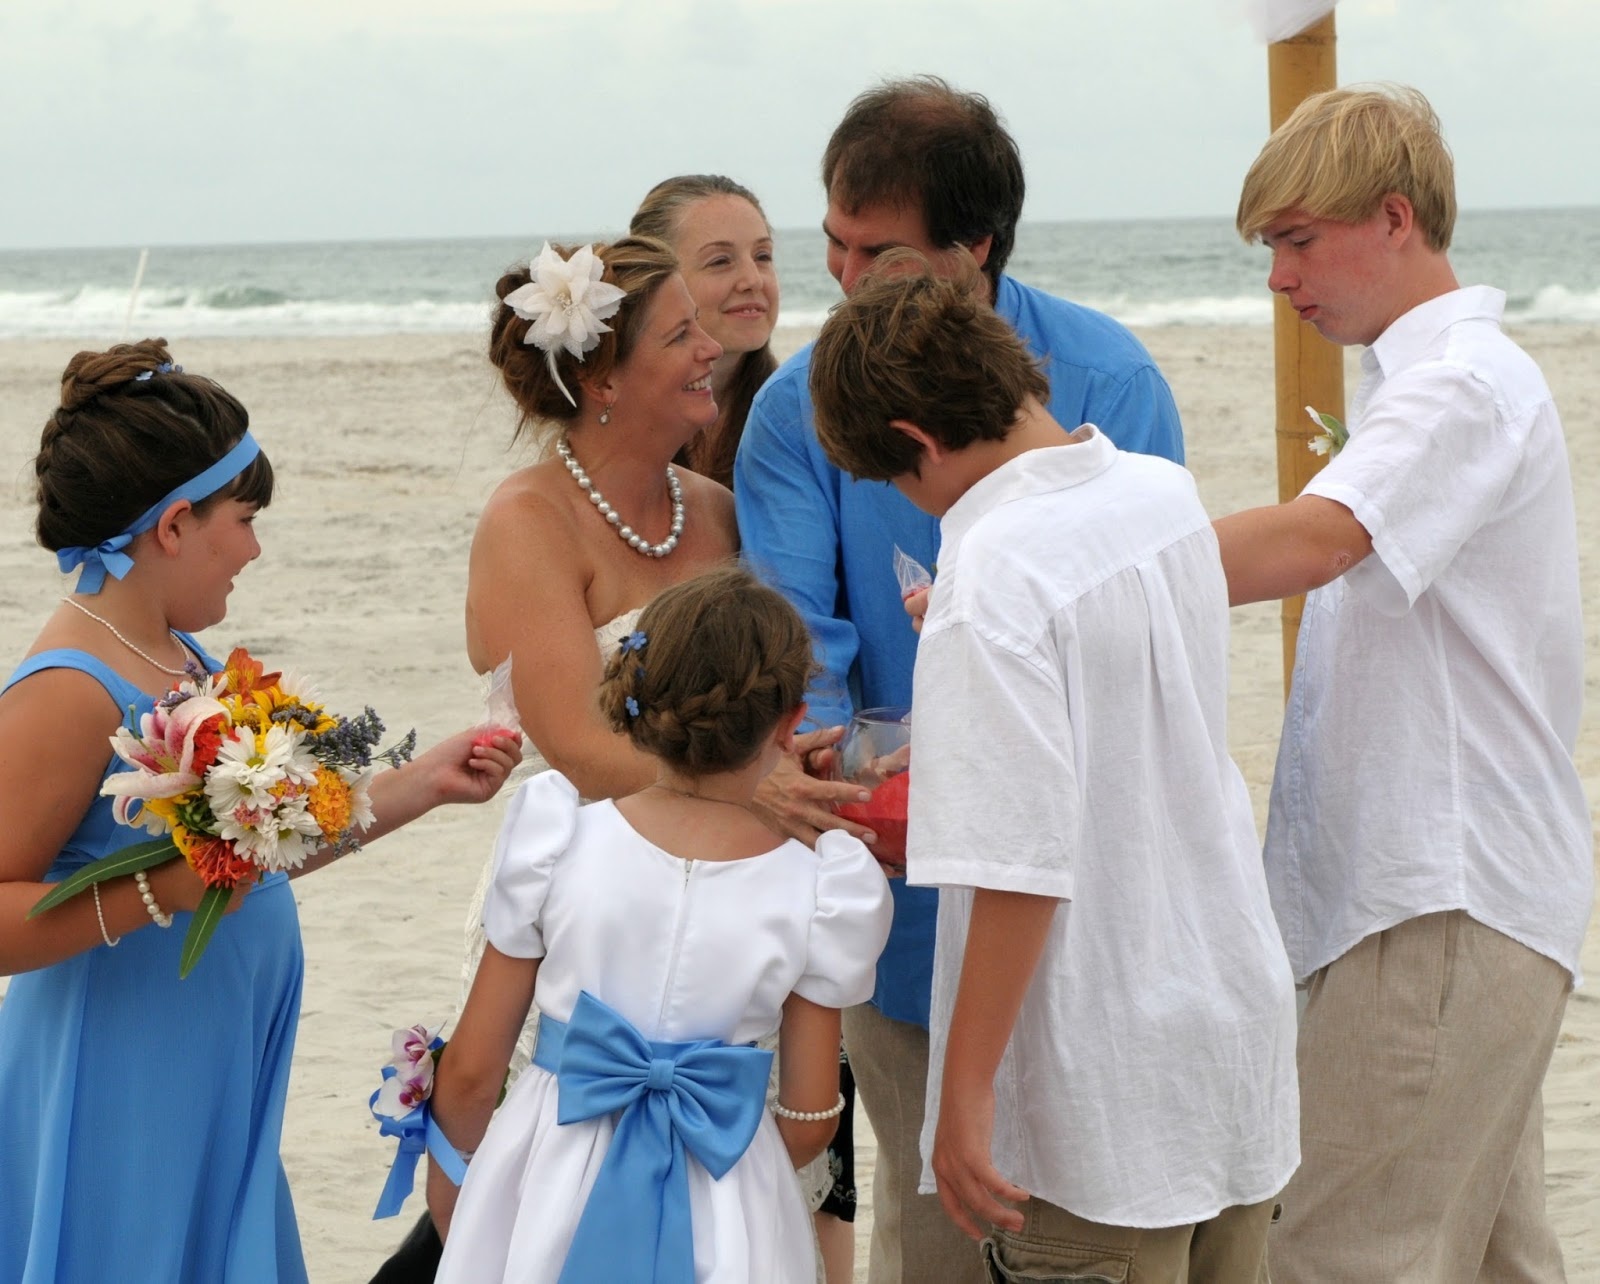 Family Blending Sand Bottles and Jars for Weddings -- add this fun idea to your wedding ceremony to celebrate your blended family.